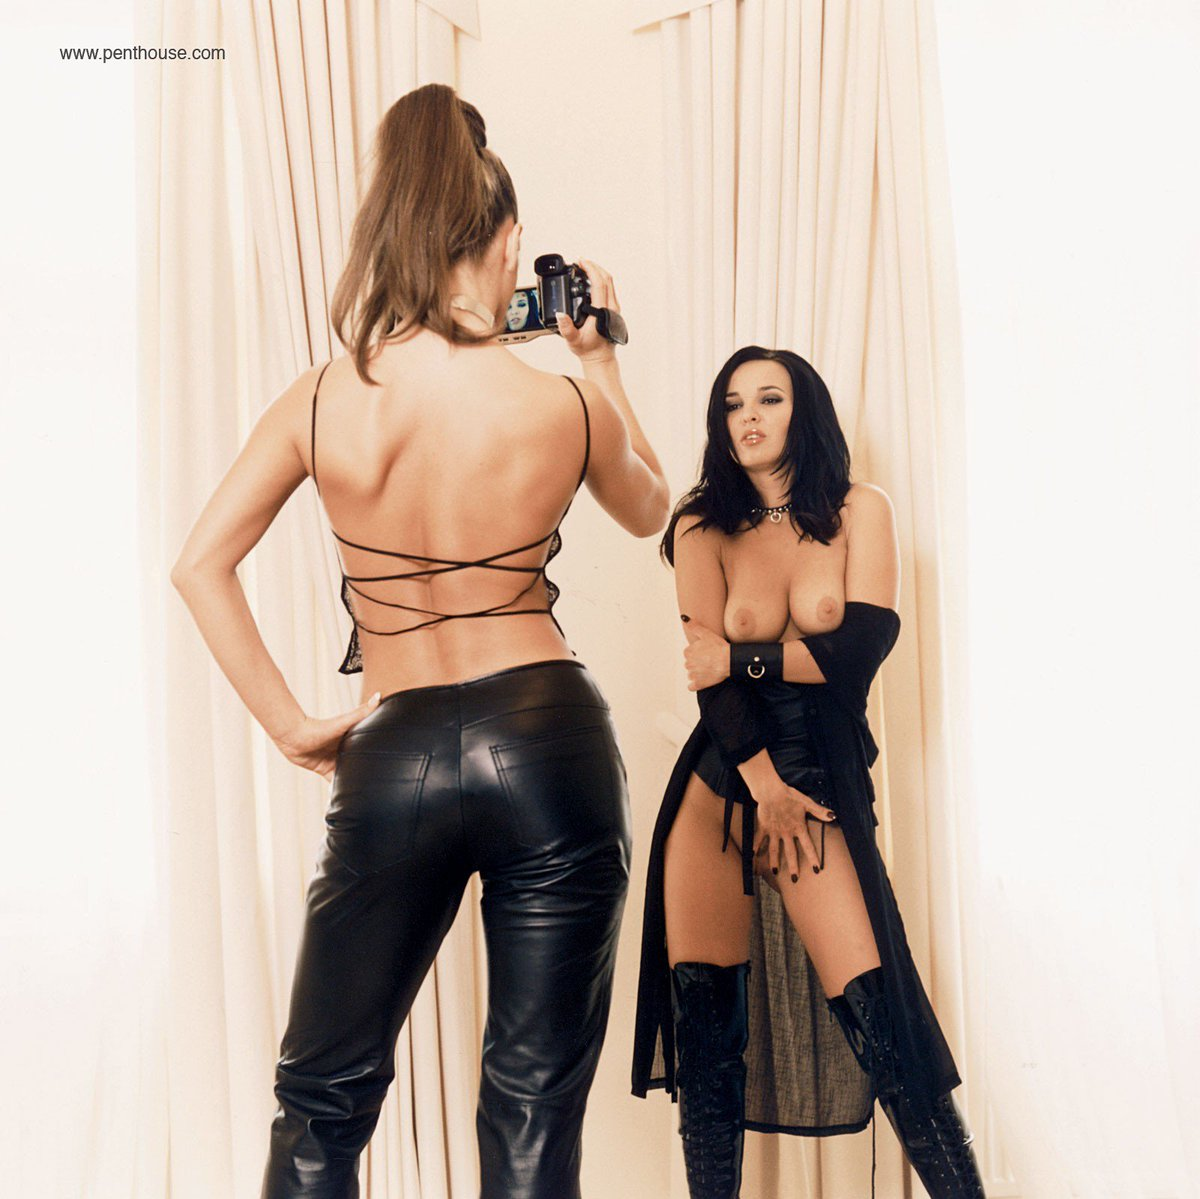 1 pic. We've got leather loving lesbians Martina and Zena in our Sept. mag #OnNewsstandsNow /